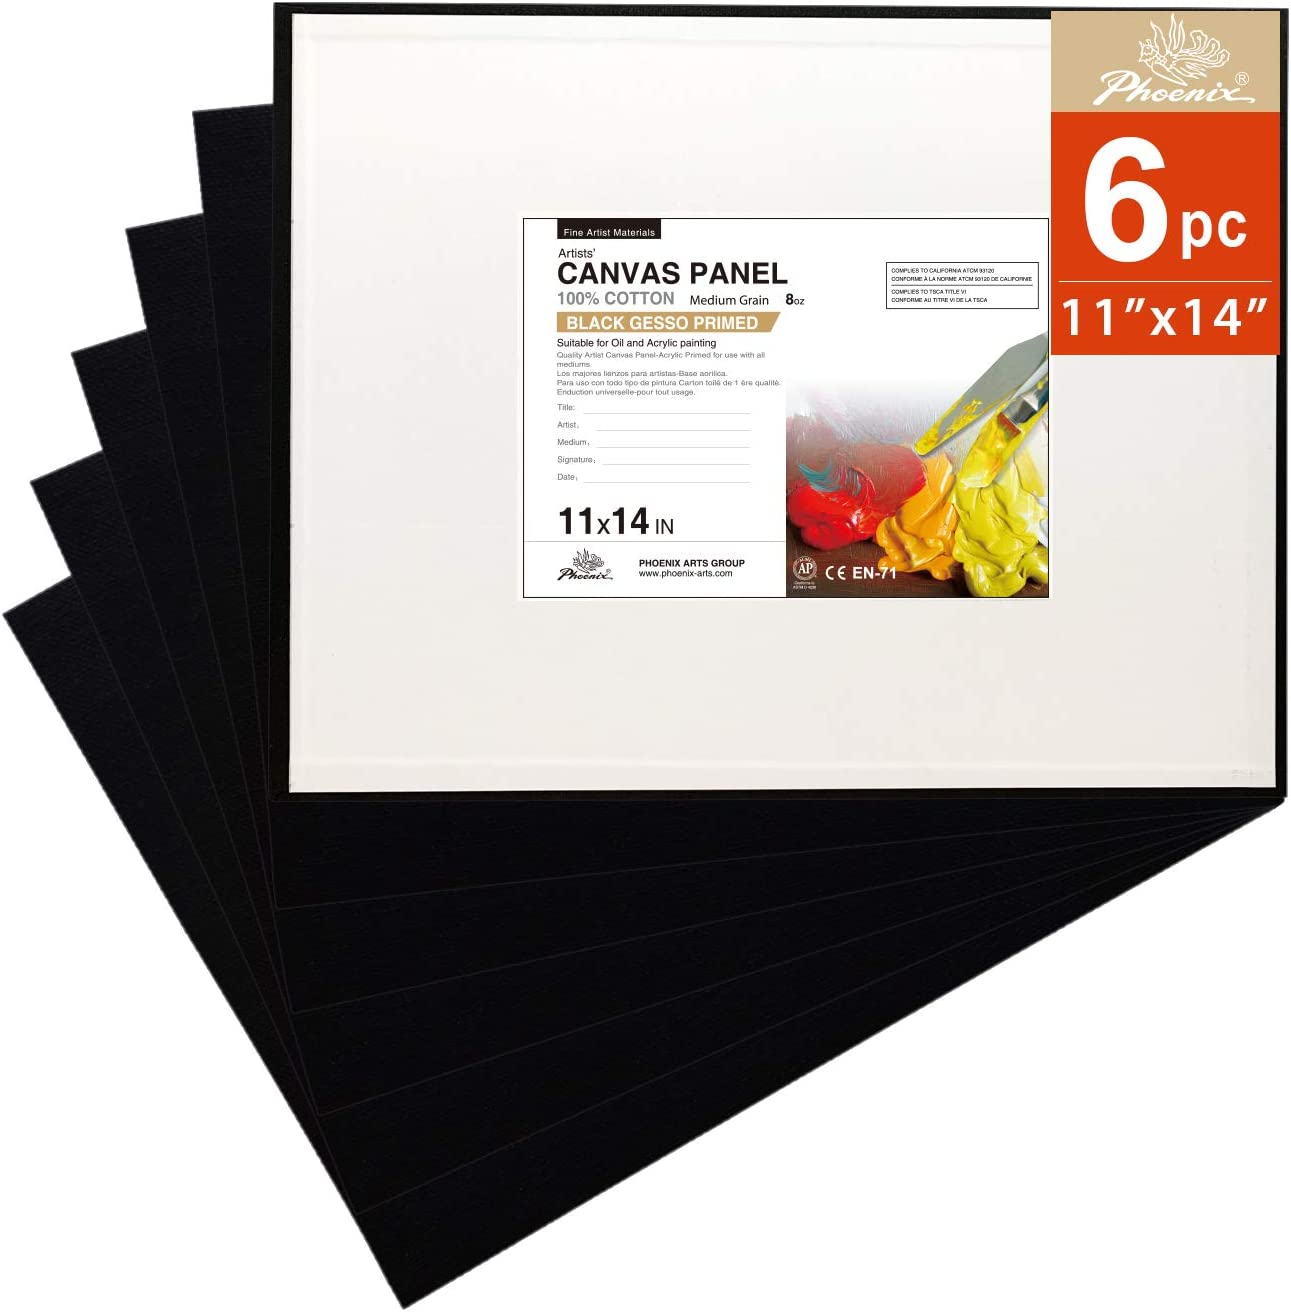 SplashNcolor Canvas Stands For Paint Pouring 4-Pack Black, 2 Inches Canvas Feet Risers For Acrylic Paint Pouring